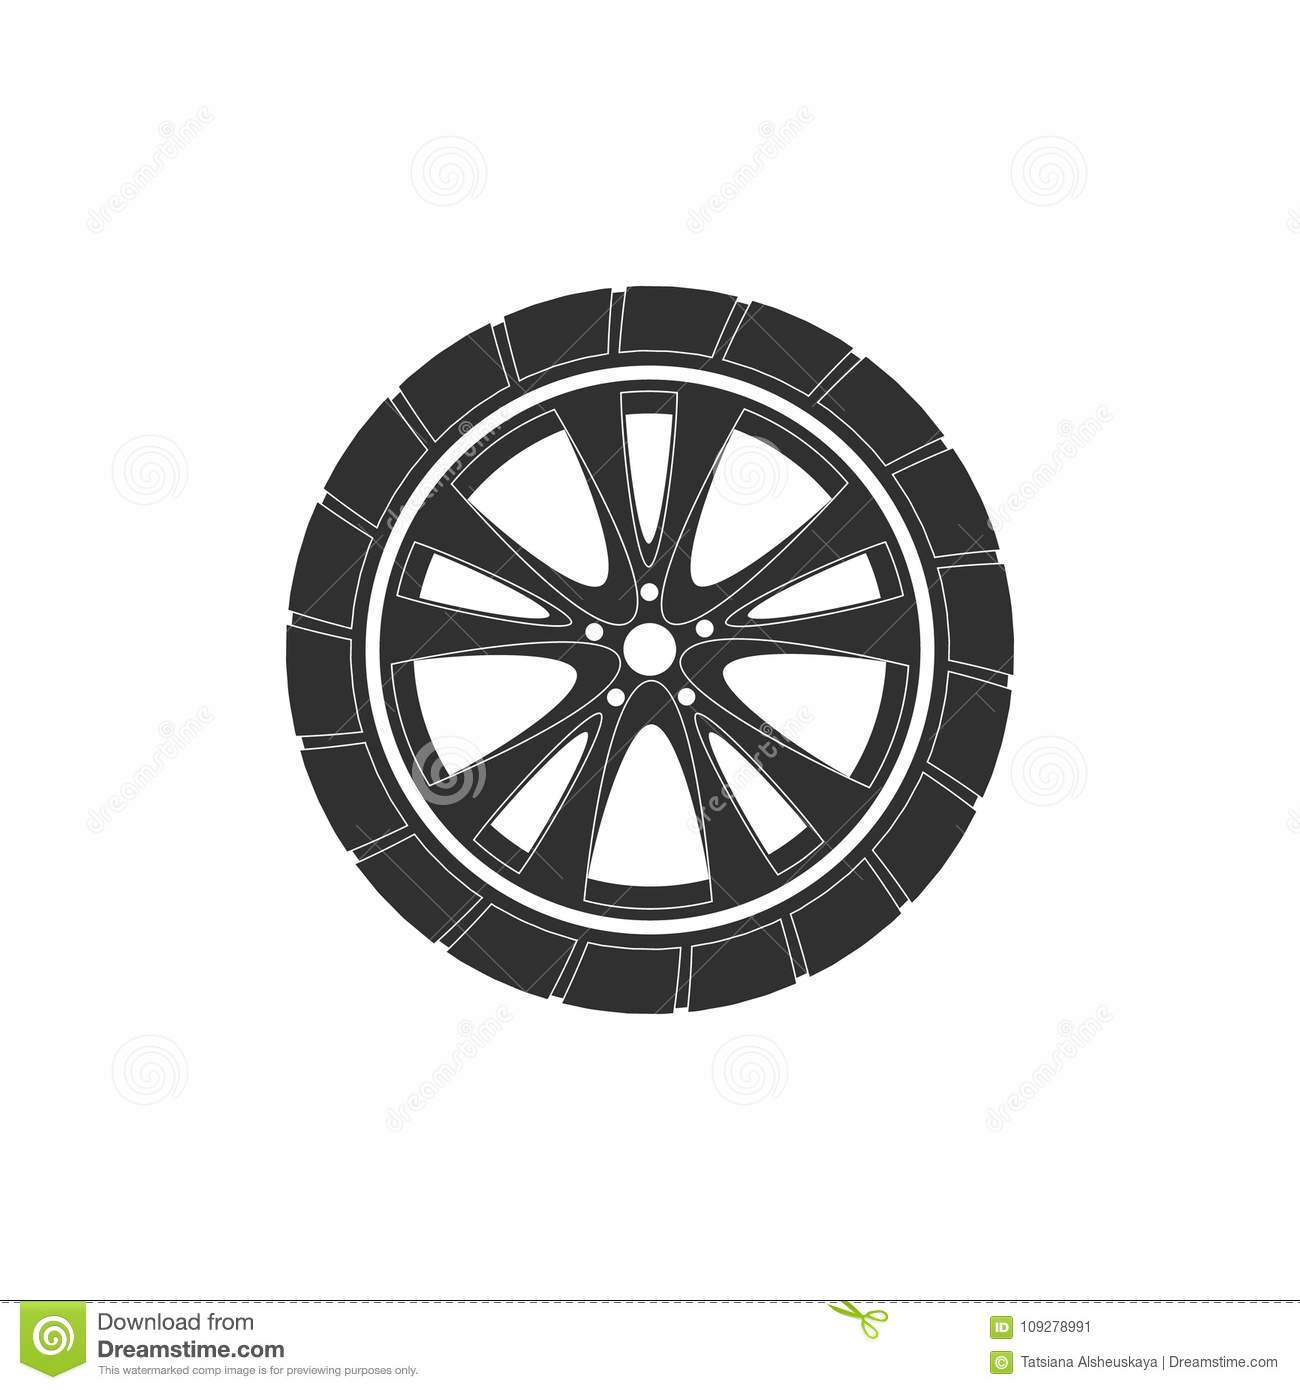 abf5818f0305d7 Car Wheel. Icons In A Style Of Flat Design. Stock Vector ...